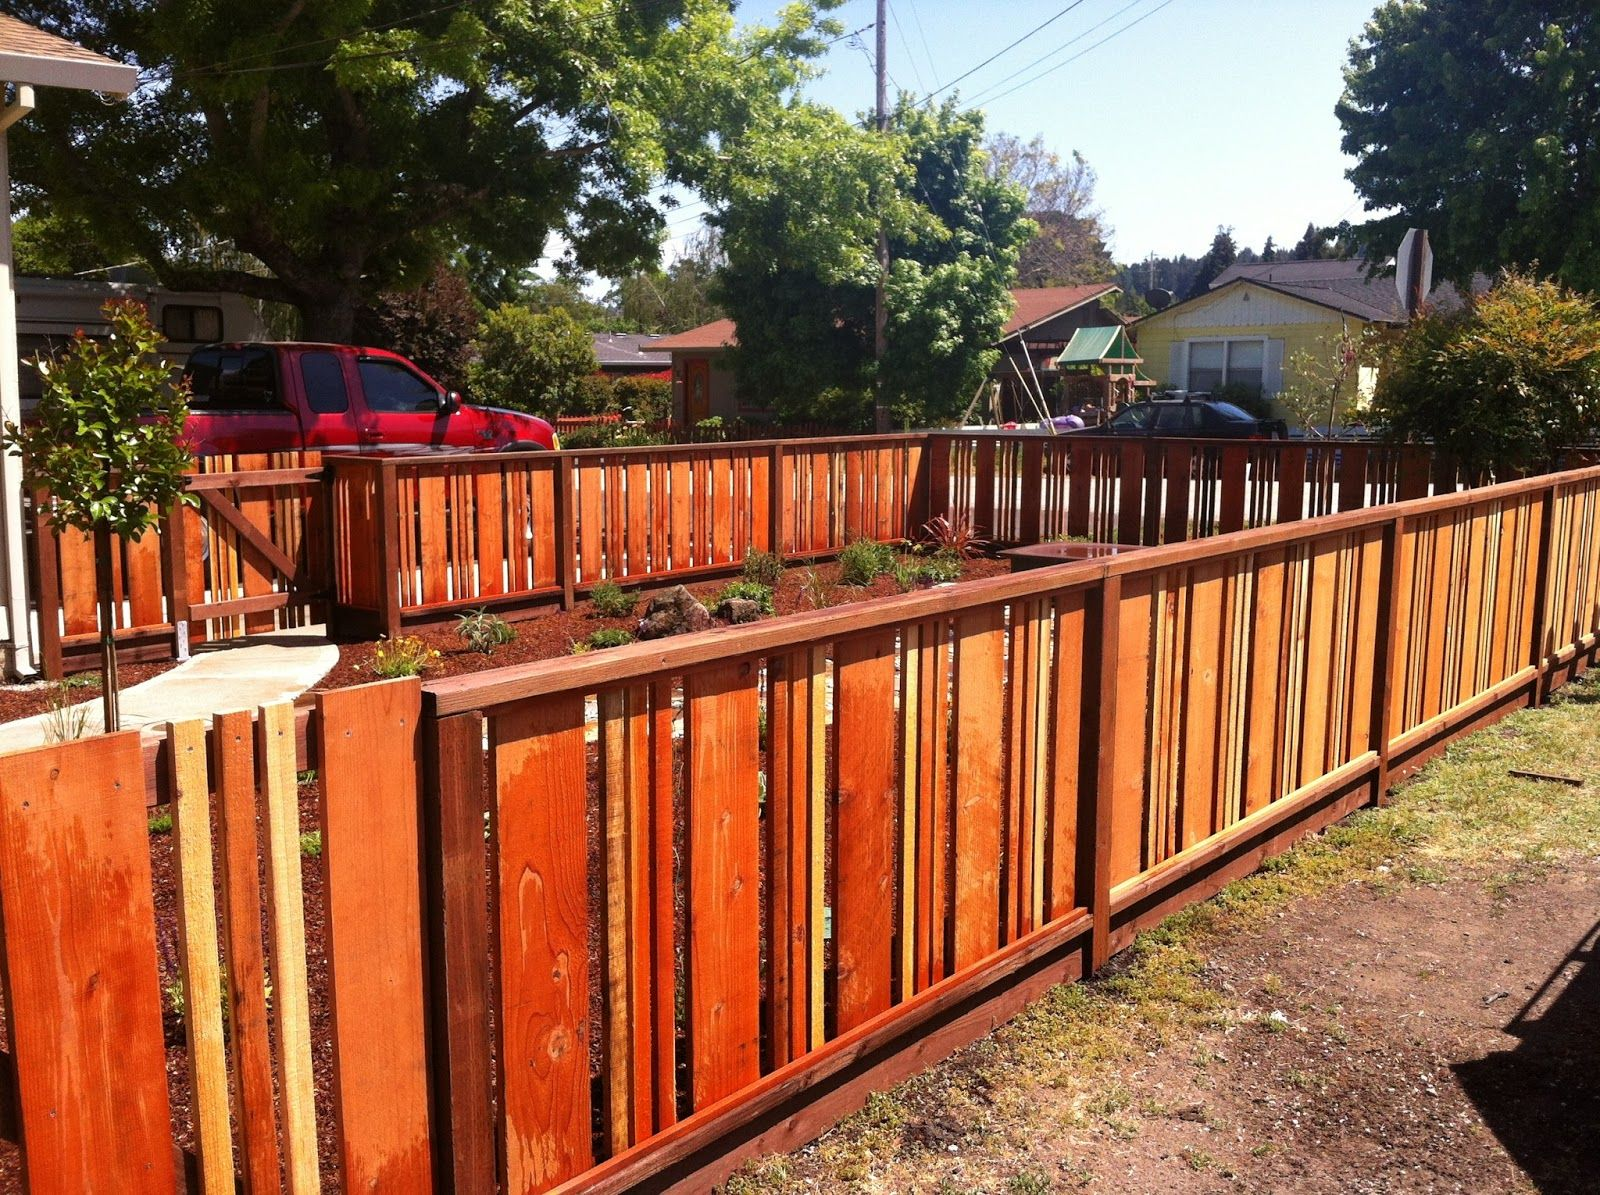 As a natural type of fencing the